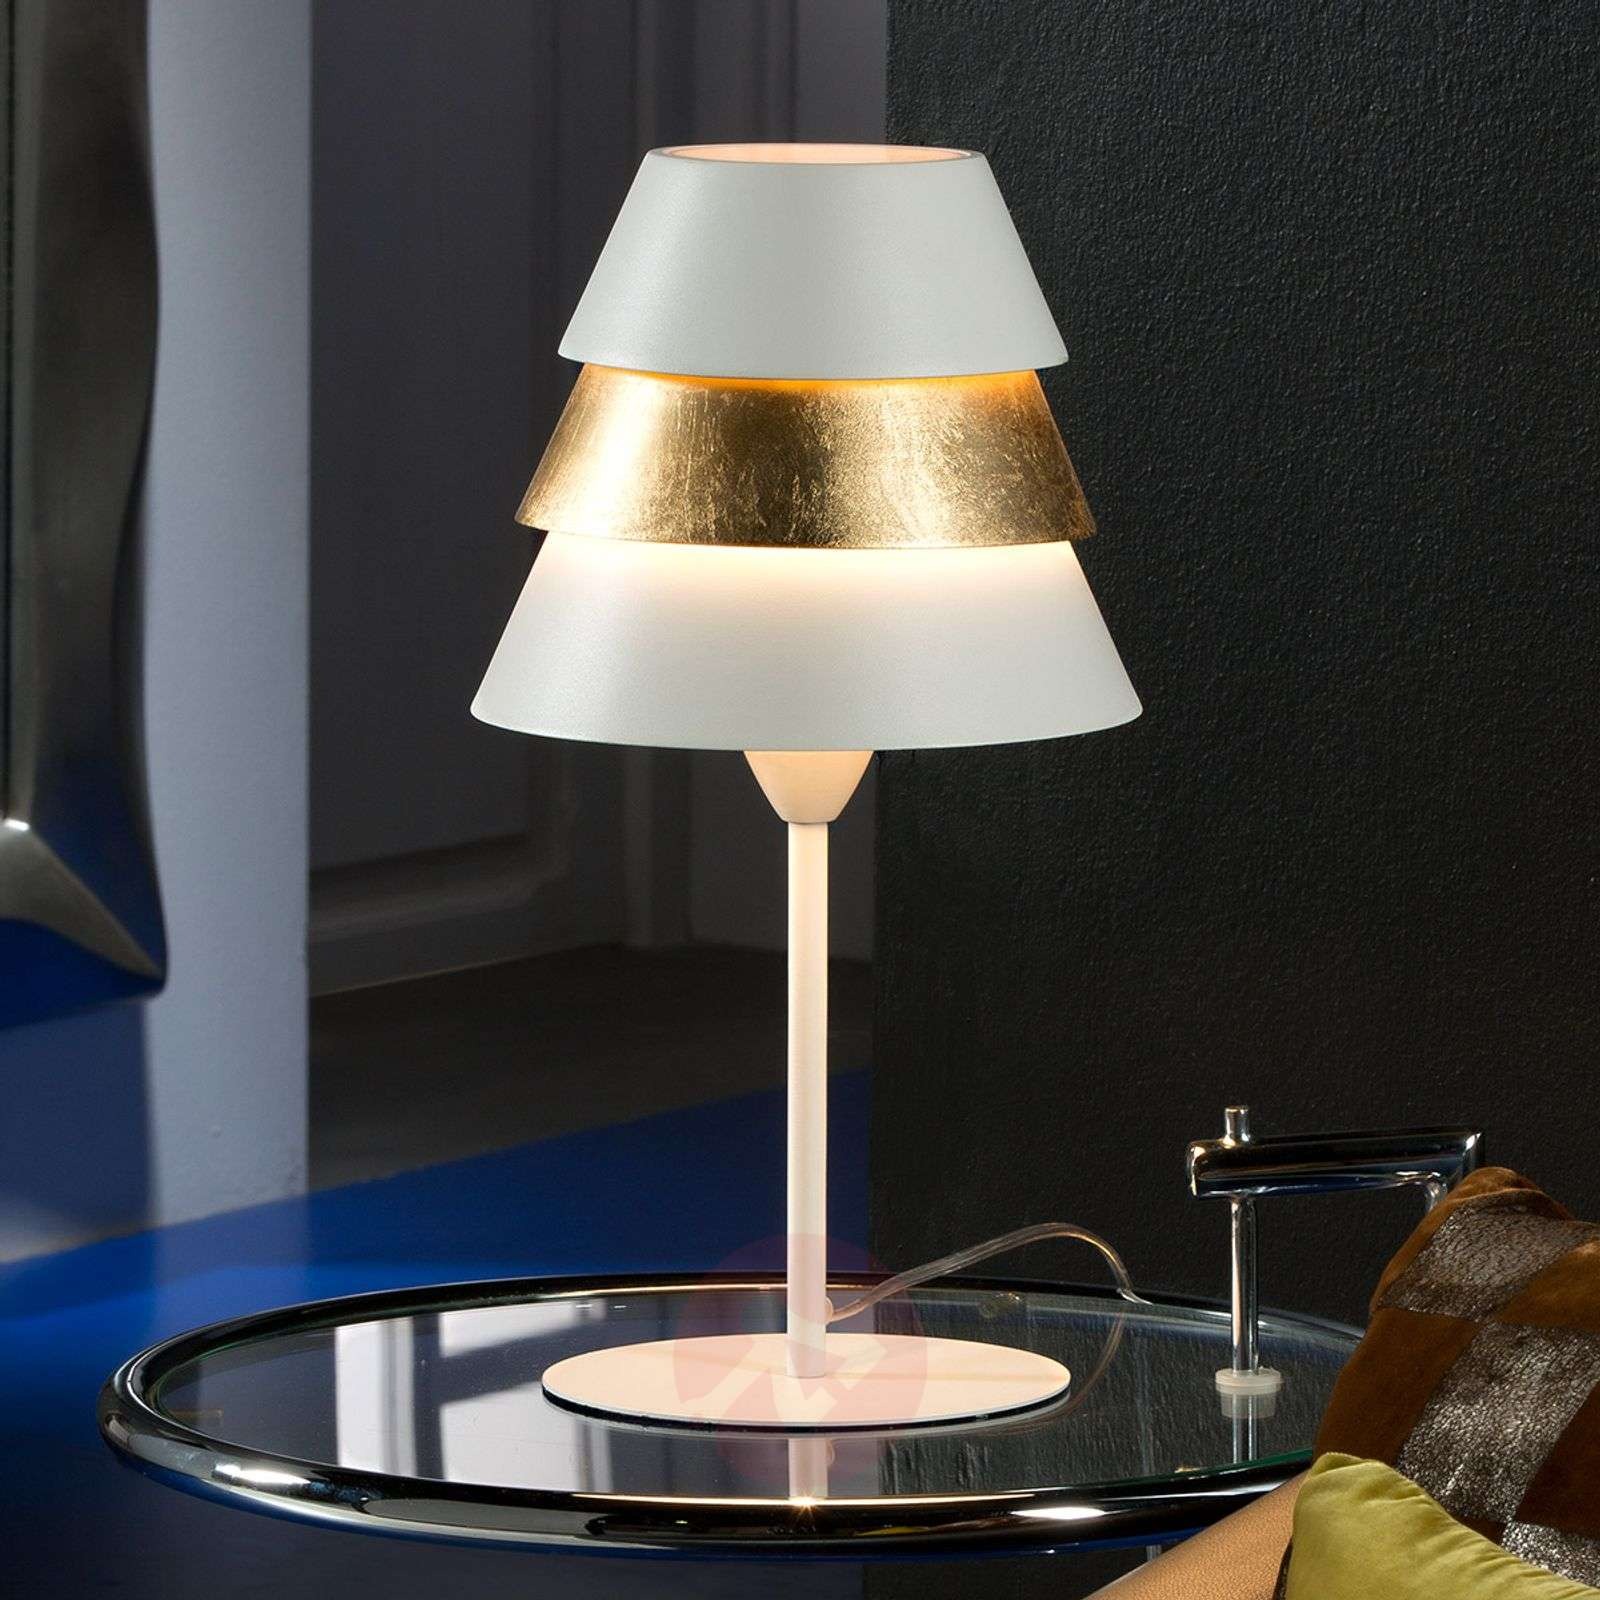 Aesthetic table lamp Isis with gold leaf-8582210-01